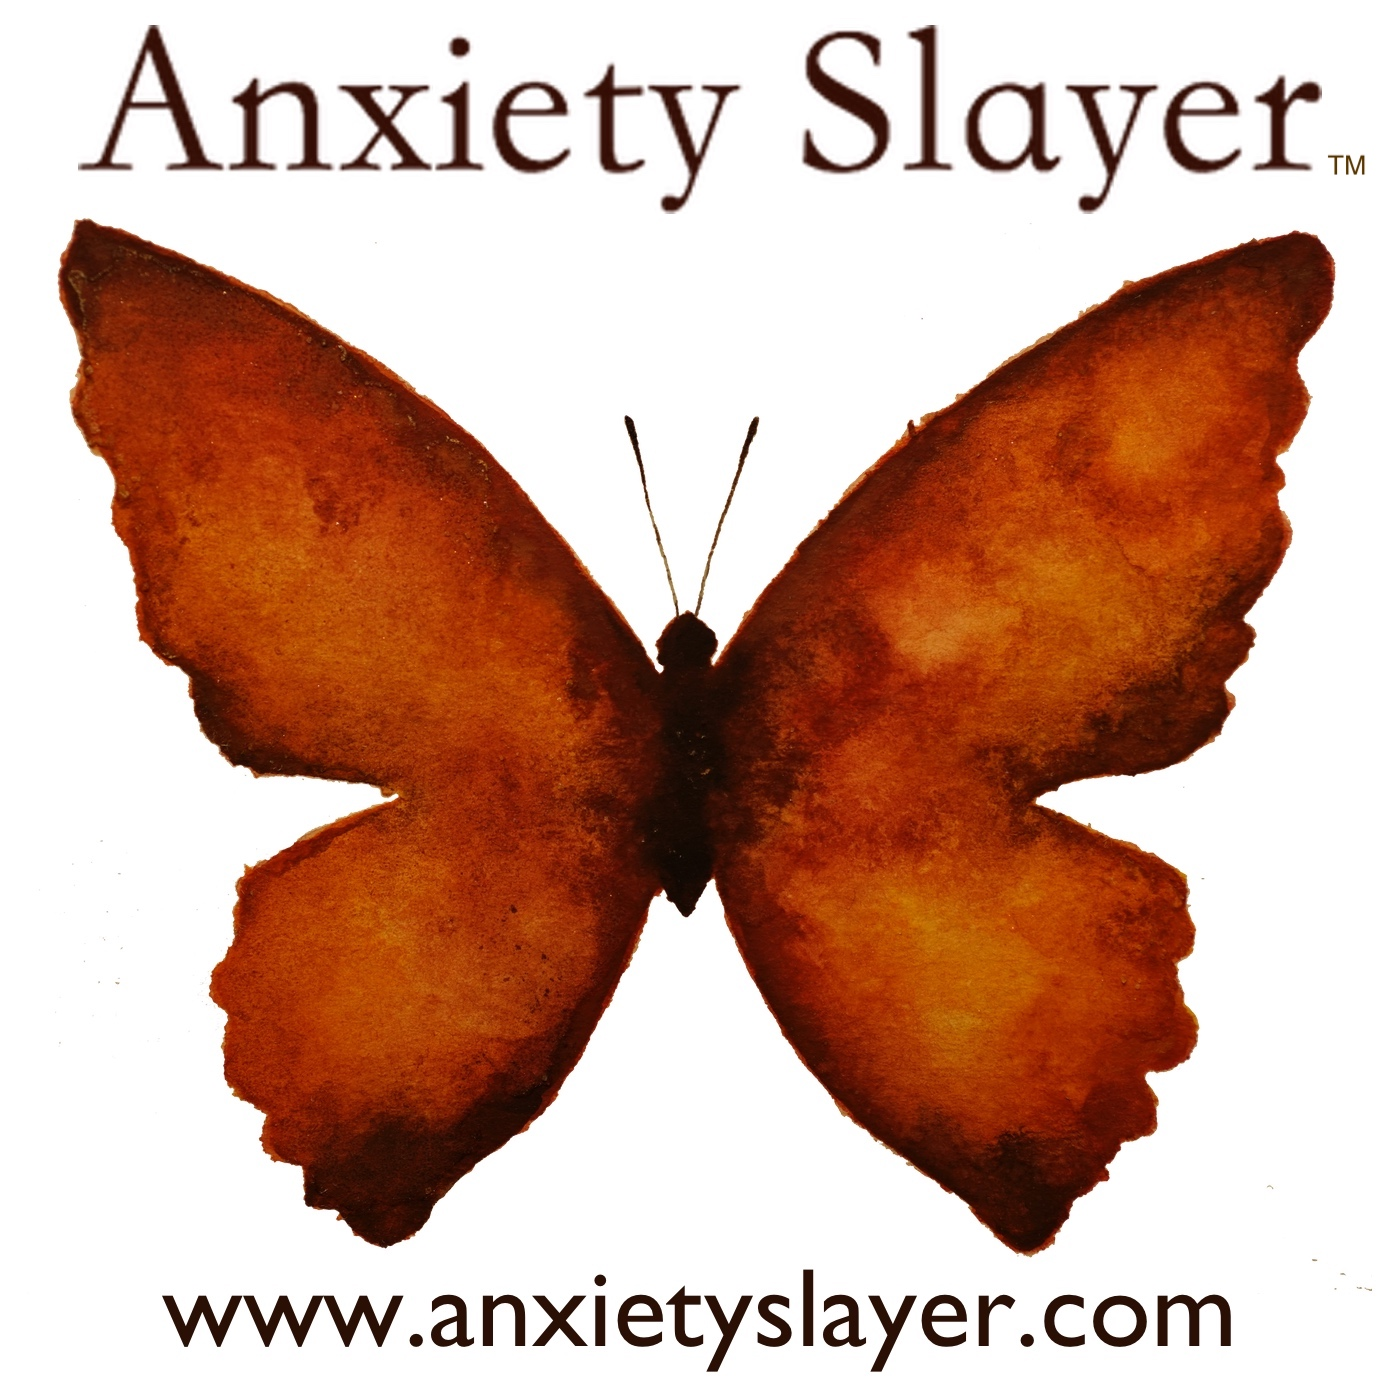 Best of Anxiety Slayer: Simple ways to calm anxiety